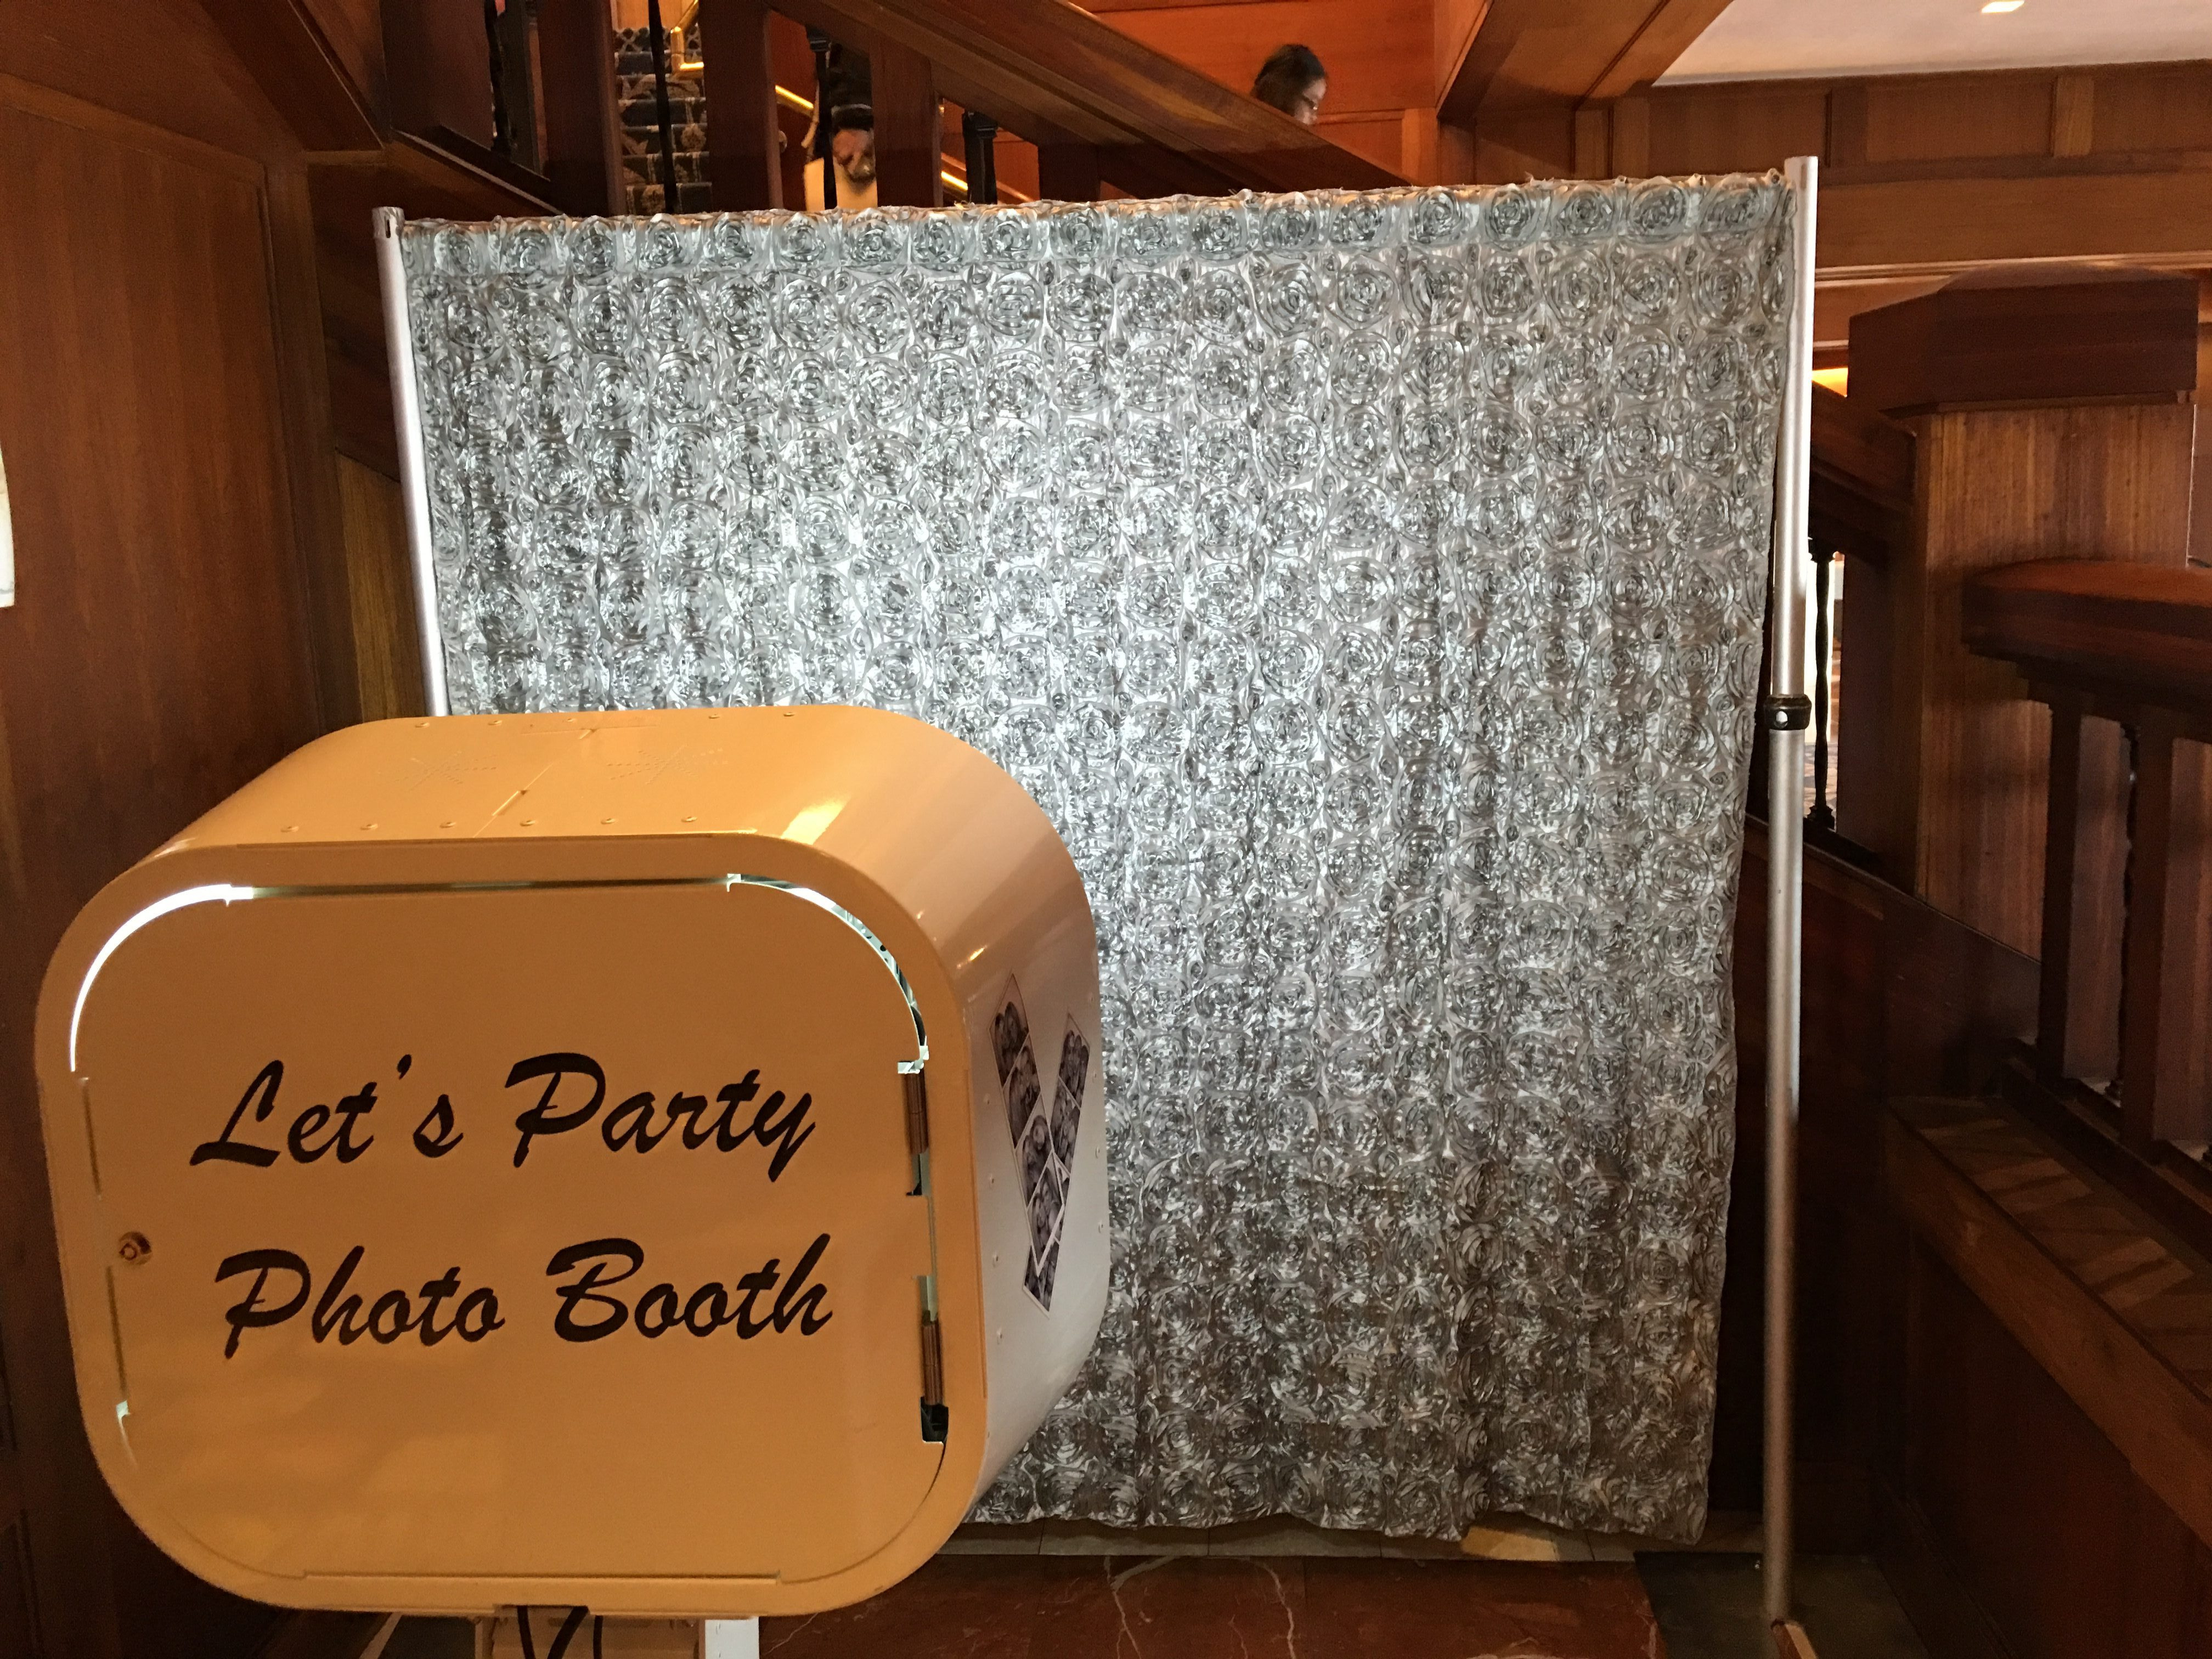 Profitable & Fun! Party Photo Booth Company Available in MontCo